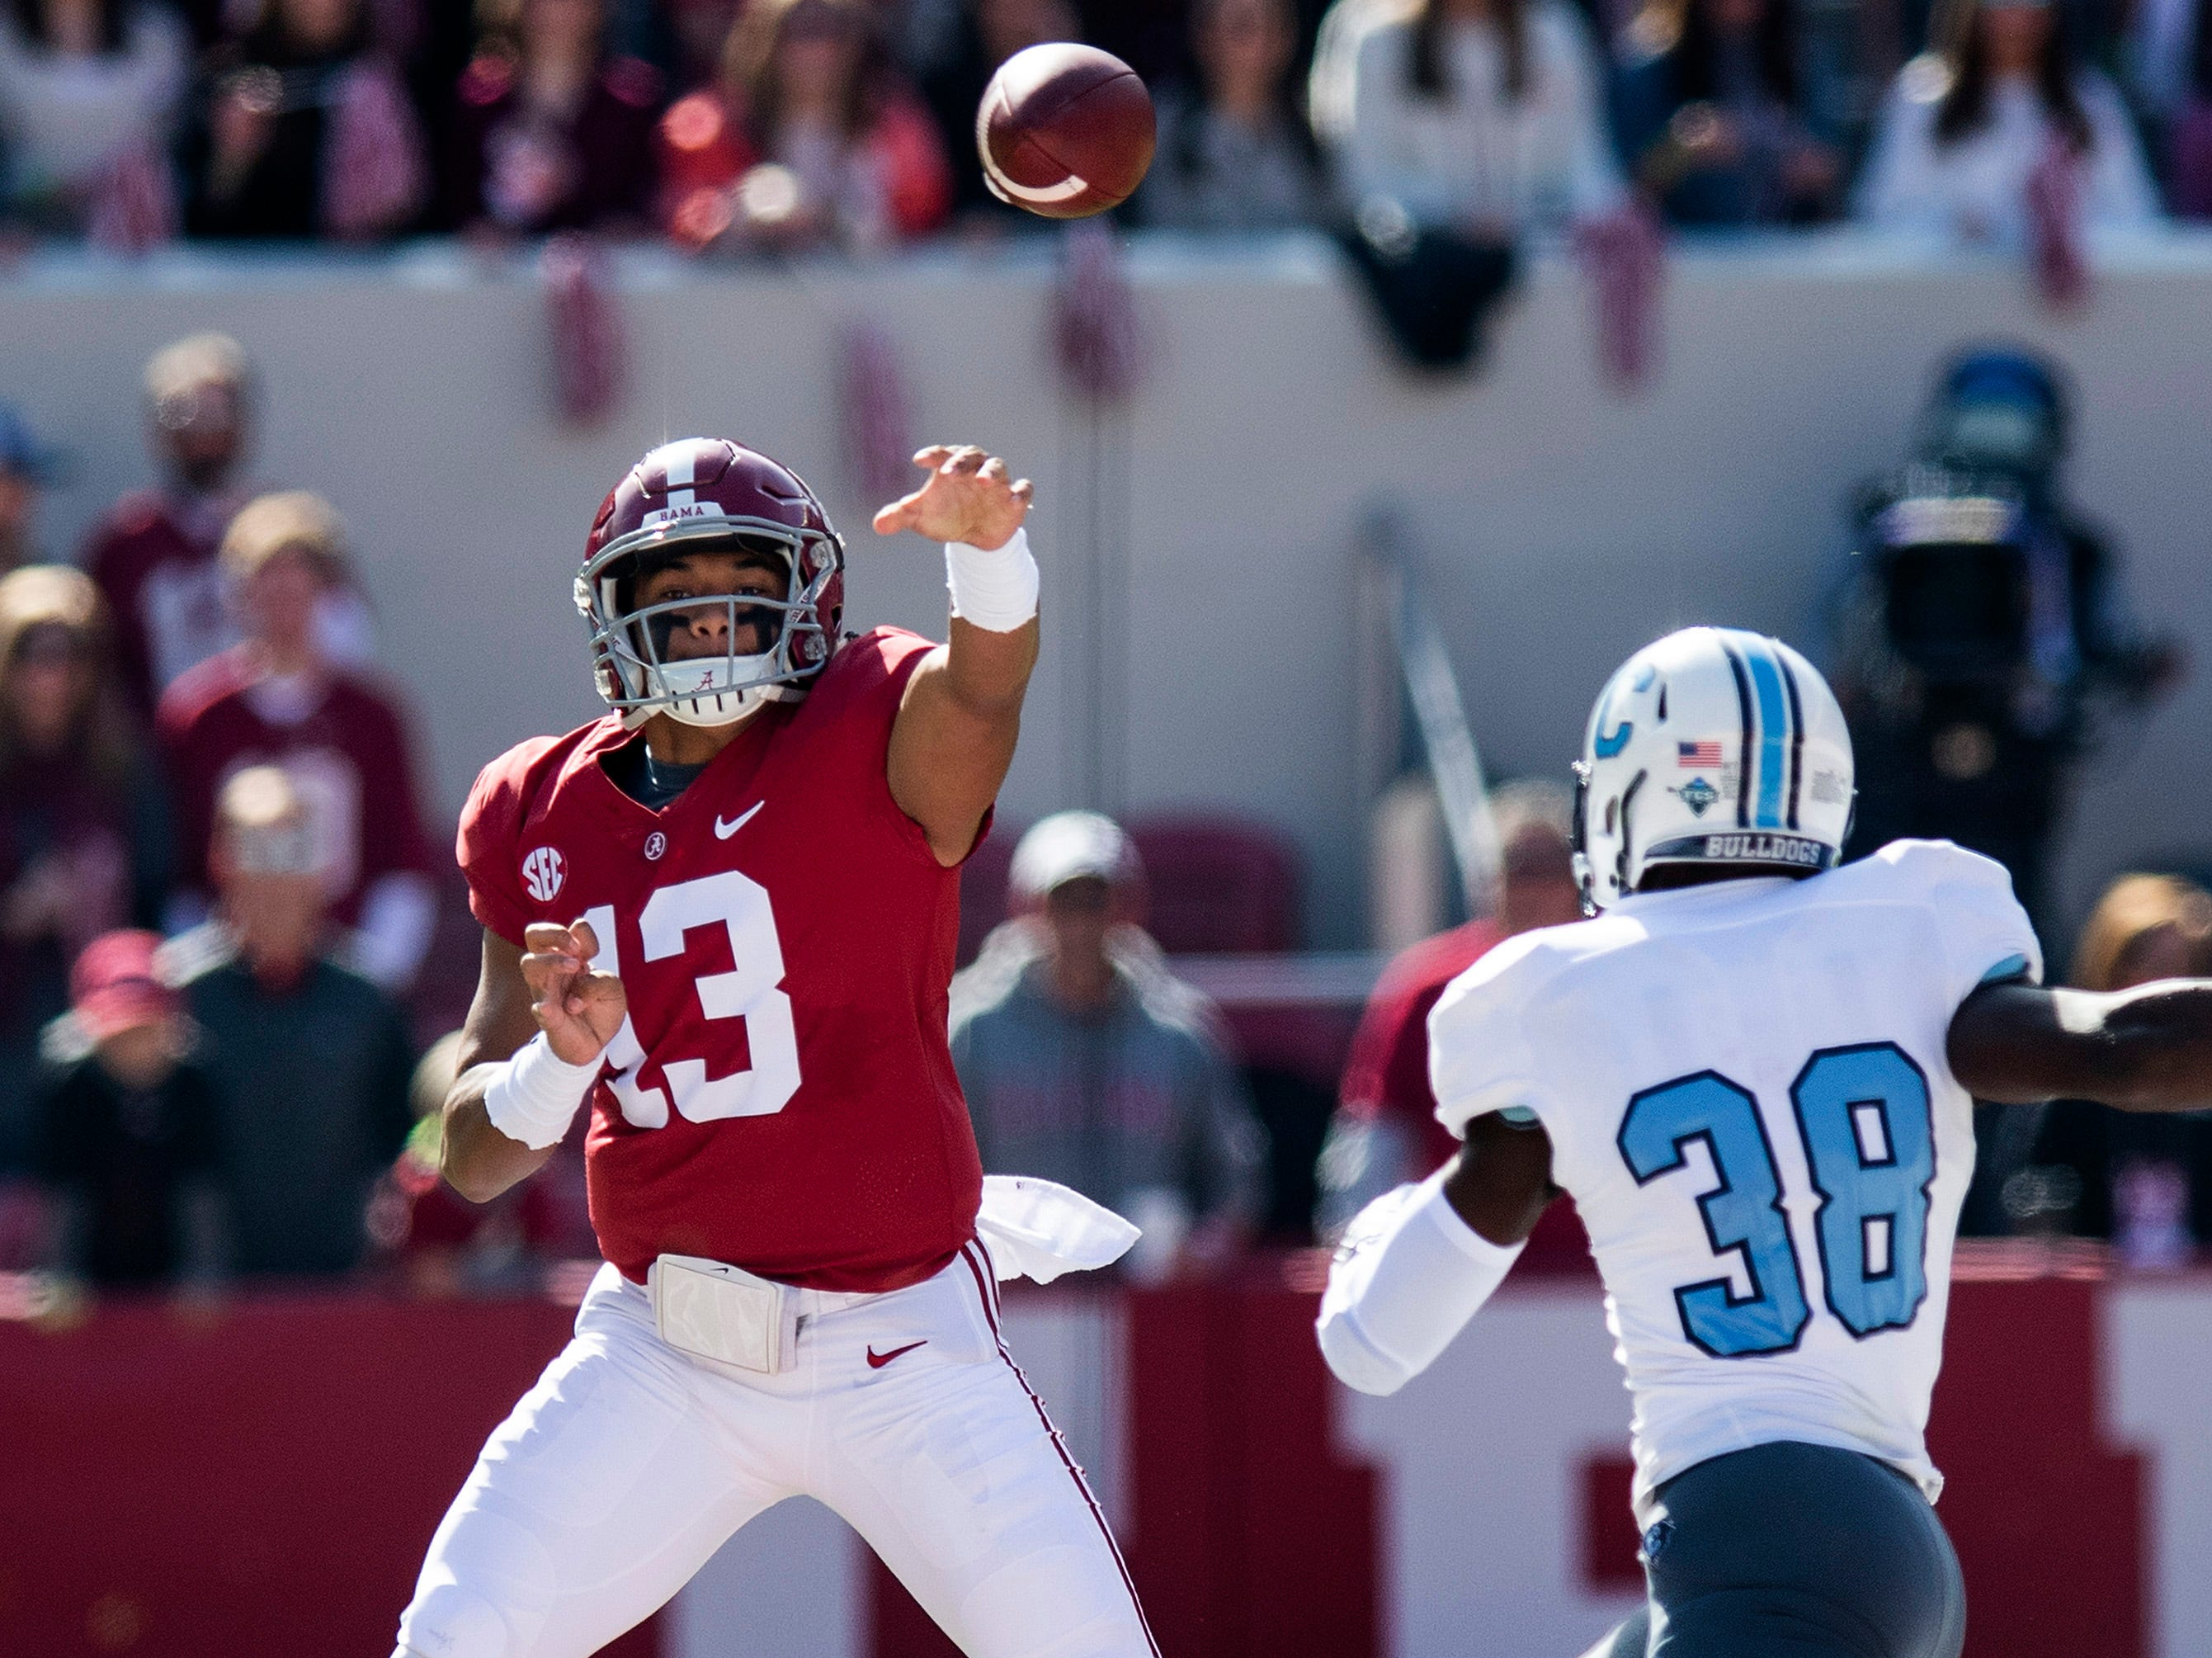 Alabama quarterback Tua Tagovailoa (13) passes over Citadel linebacker Noah Dawkins (38) In first half action at Bryant-Denny Stadium in Tuscaloosa, Ala., on Saturday November 17, 2018.